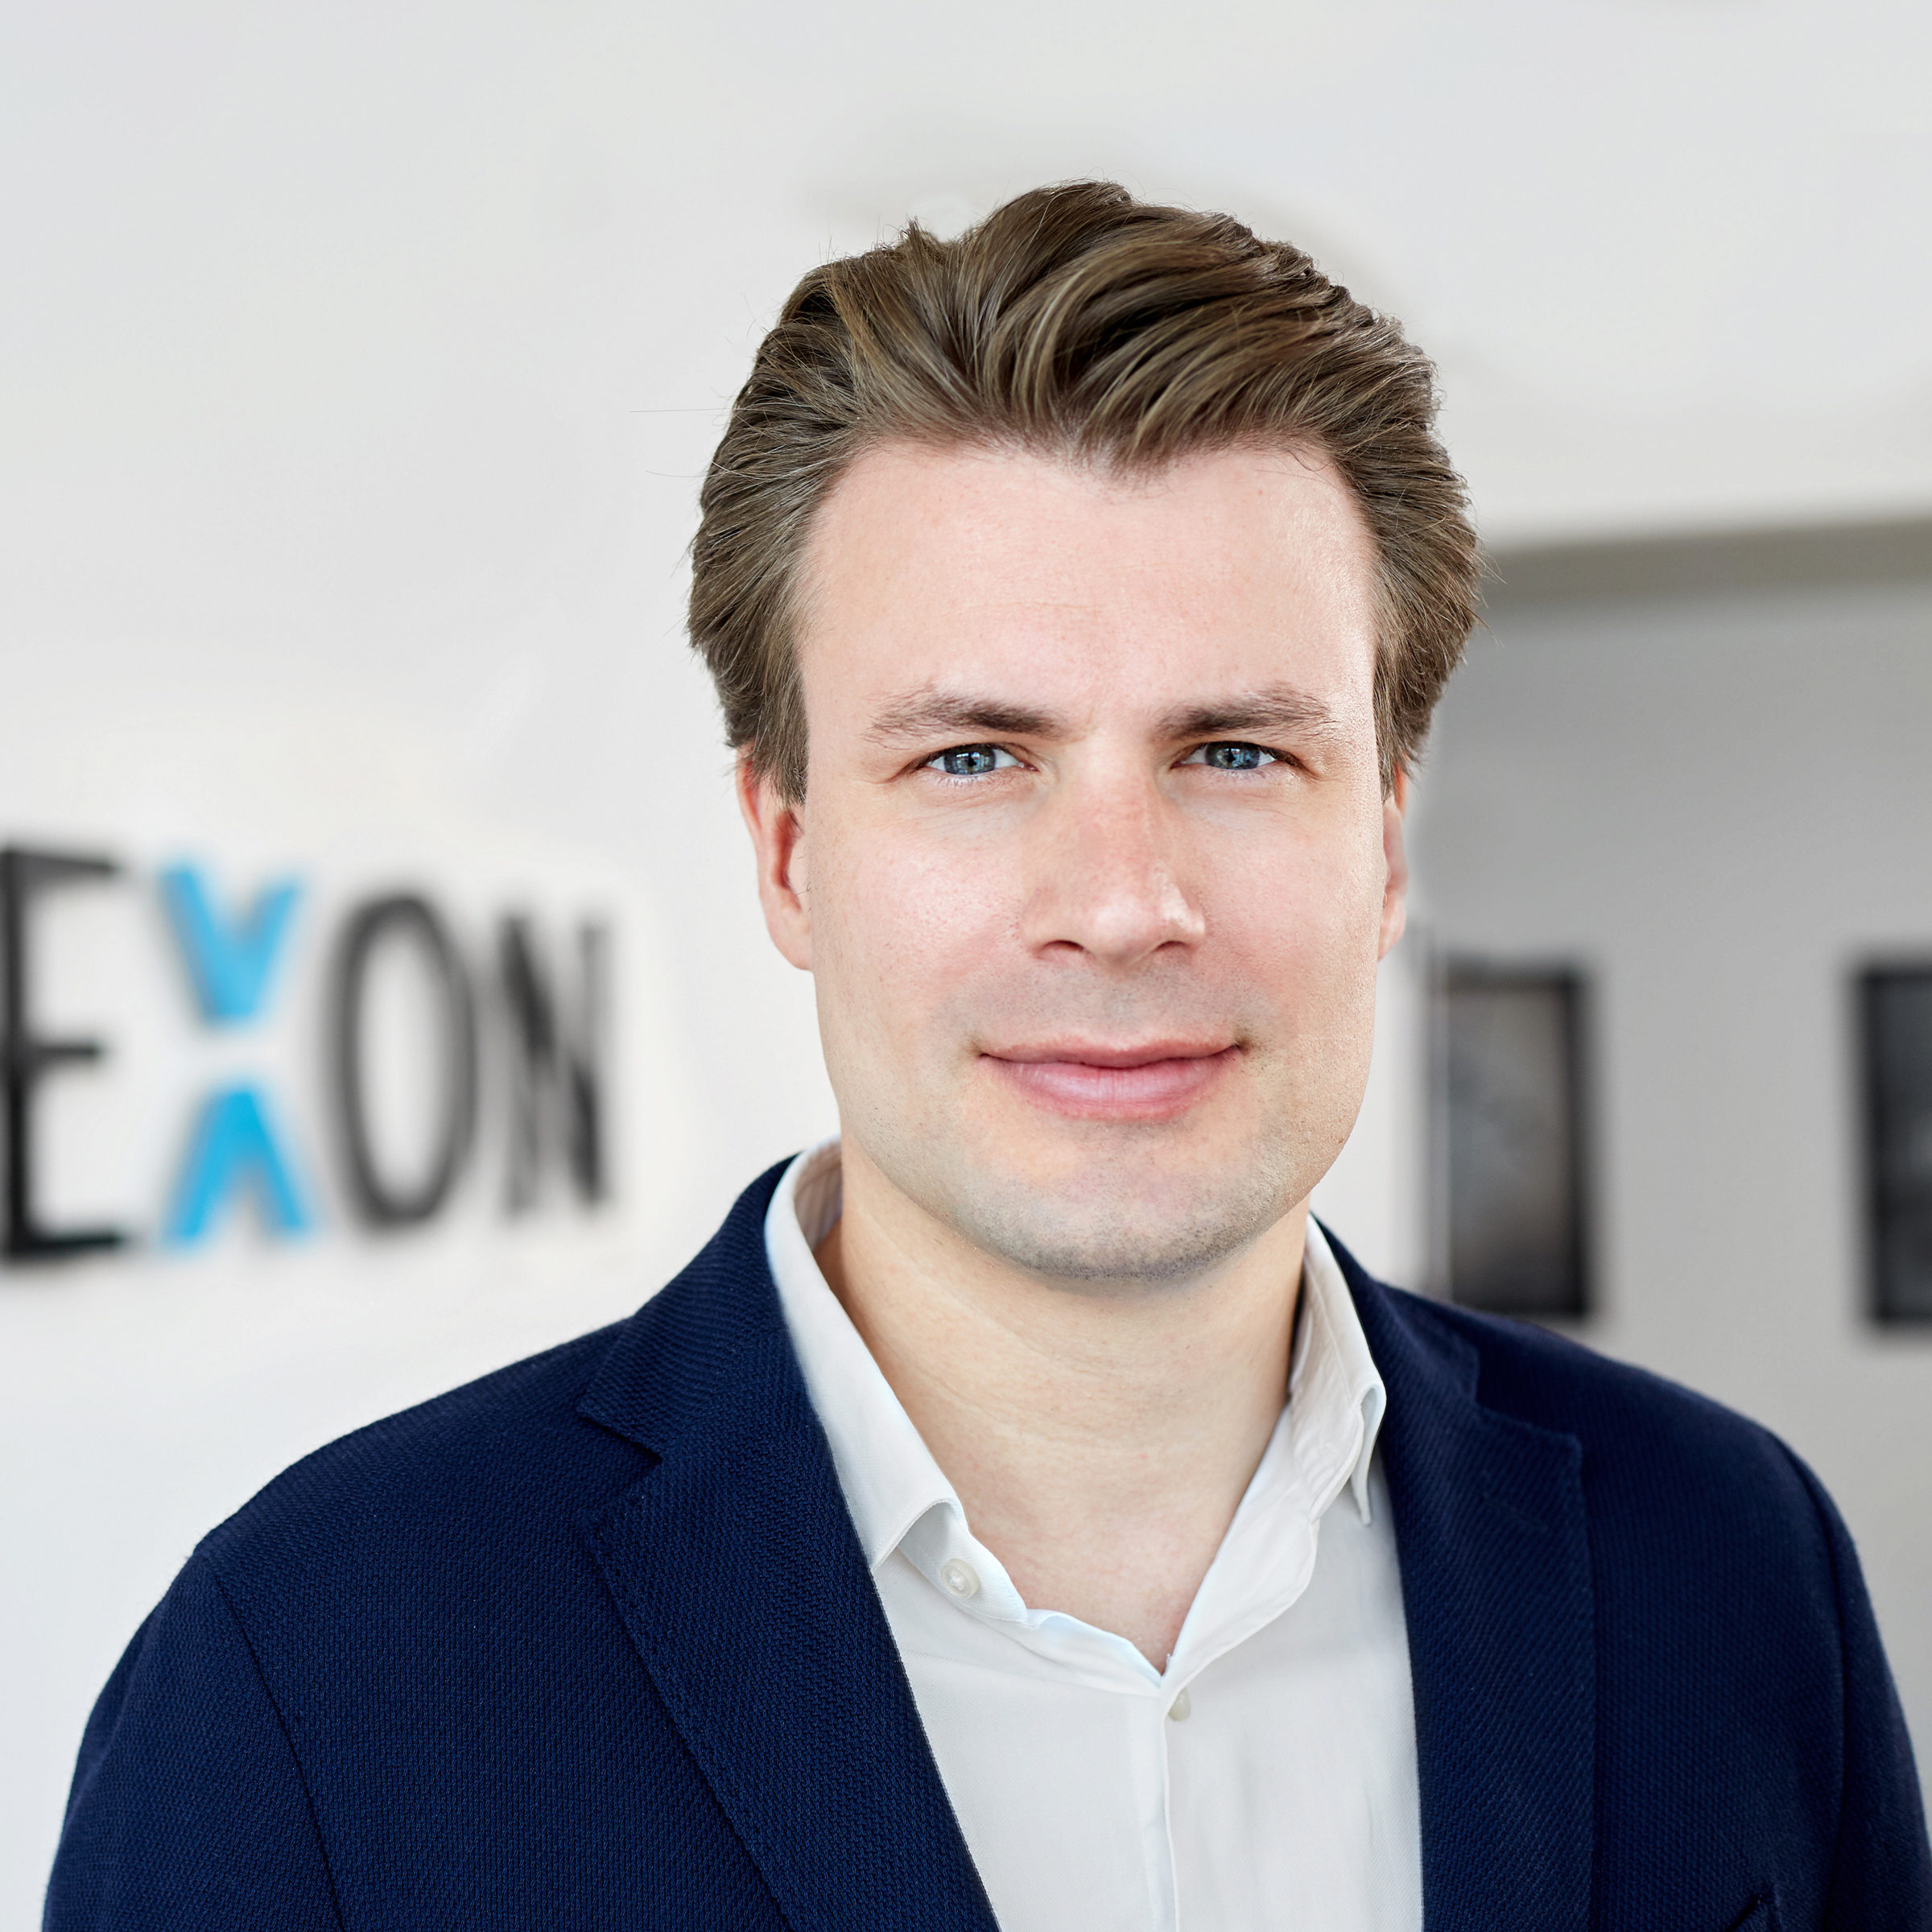 Dr. Alexander Hüttenbrink - co-founder and Managing Director of Kinexon Industries GmbH